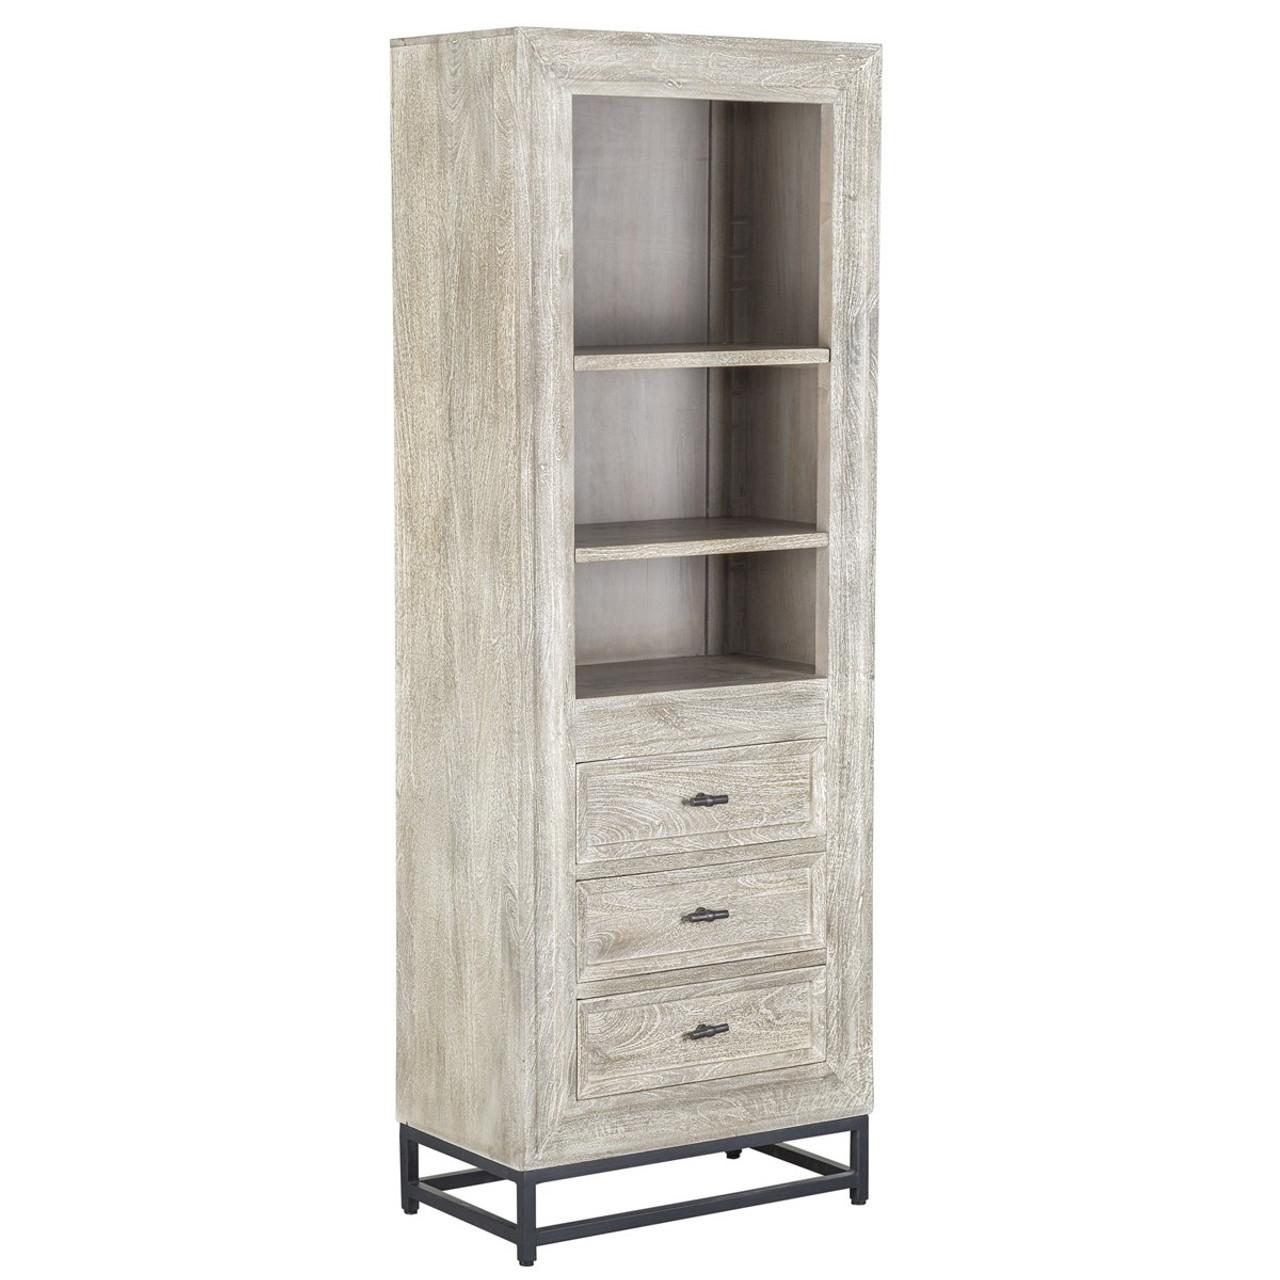 americana native whitewash s wood reclaimed bathroom furniture bath hutch trails in bookcase